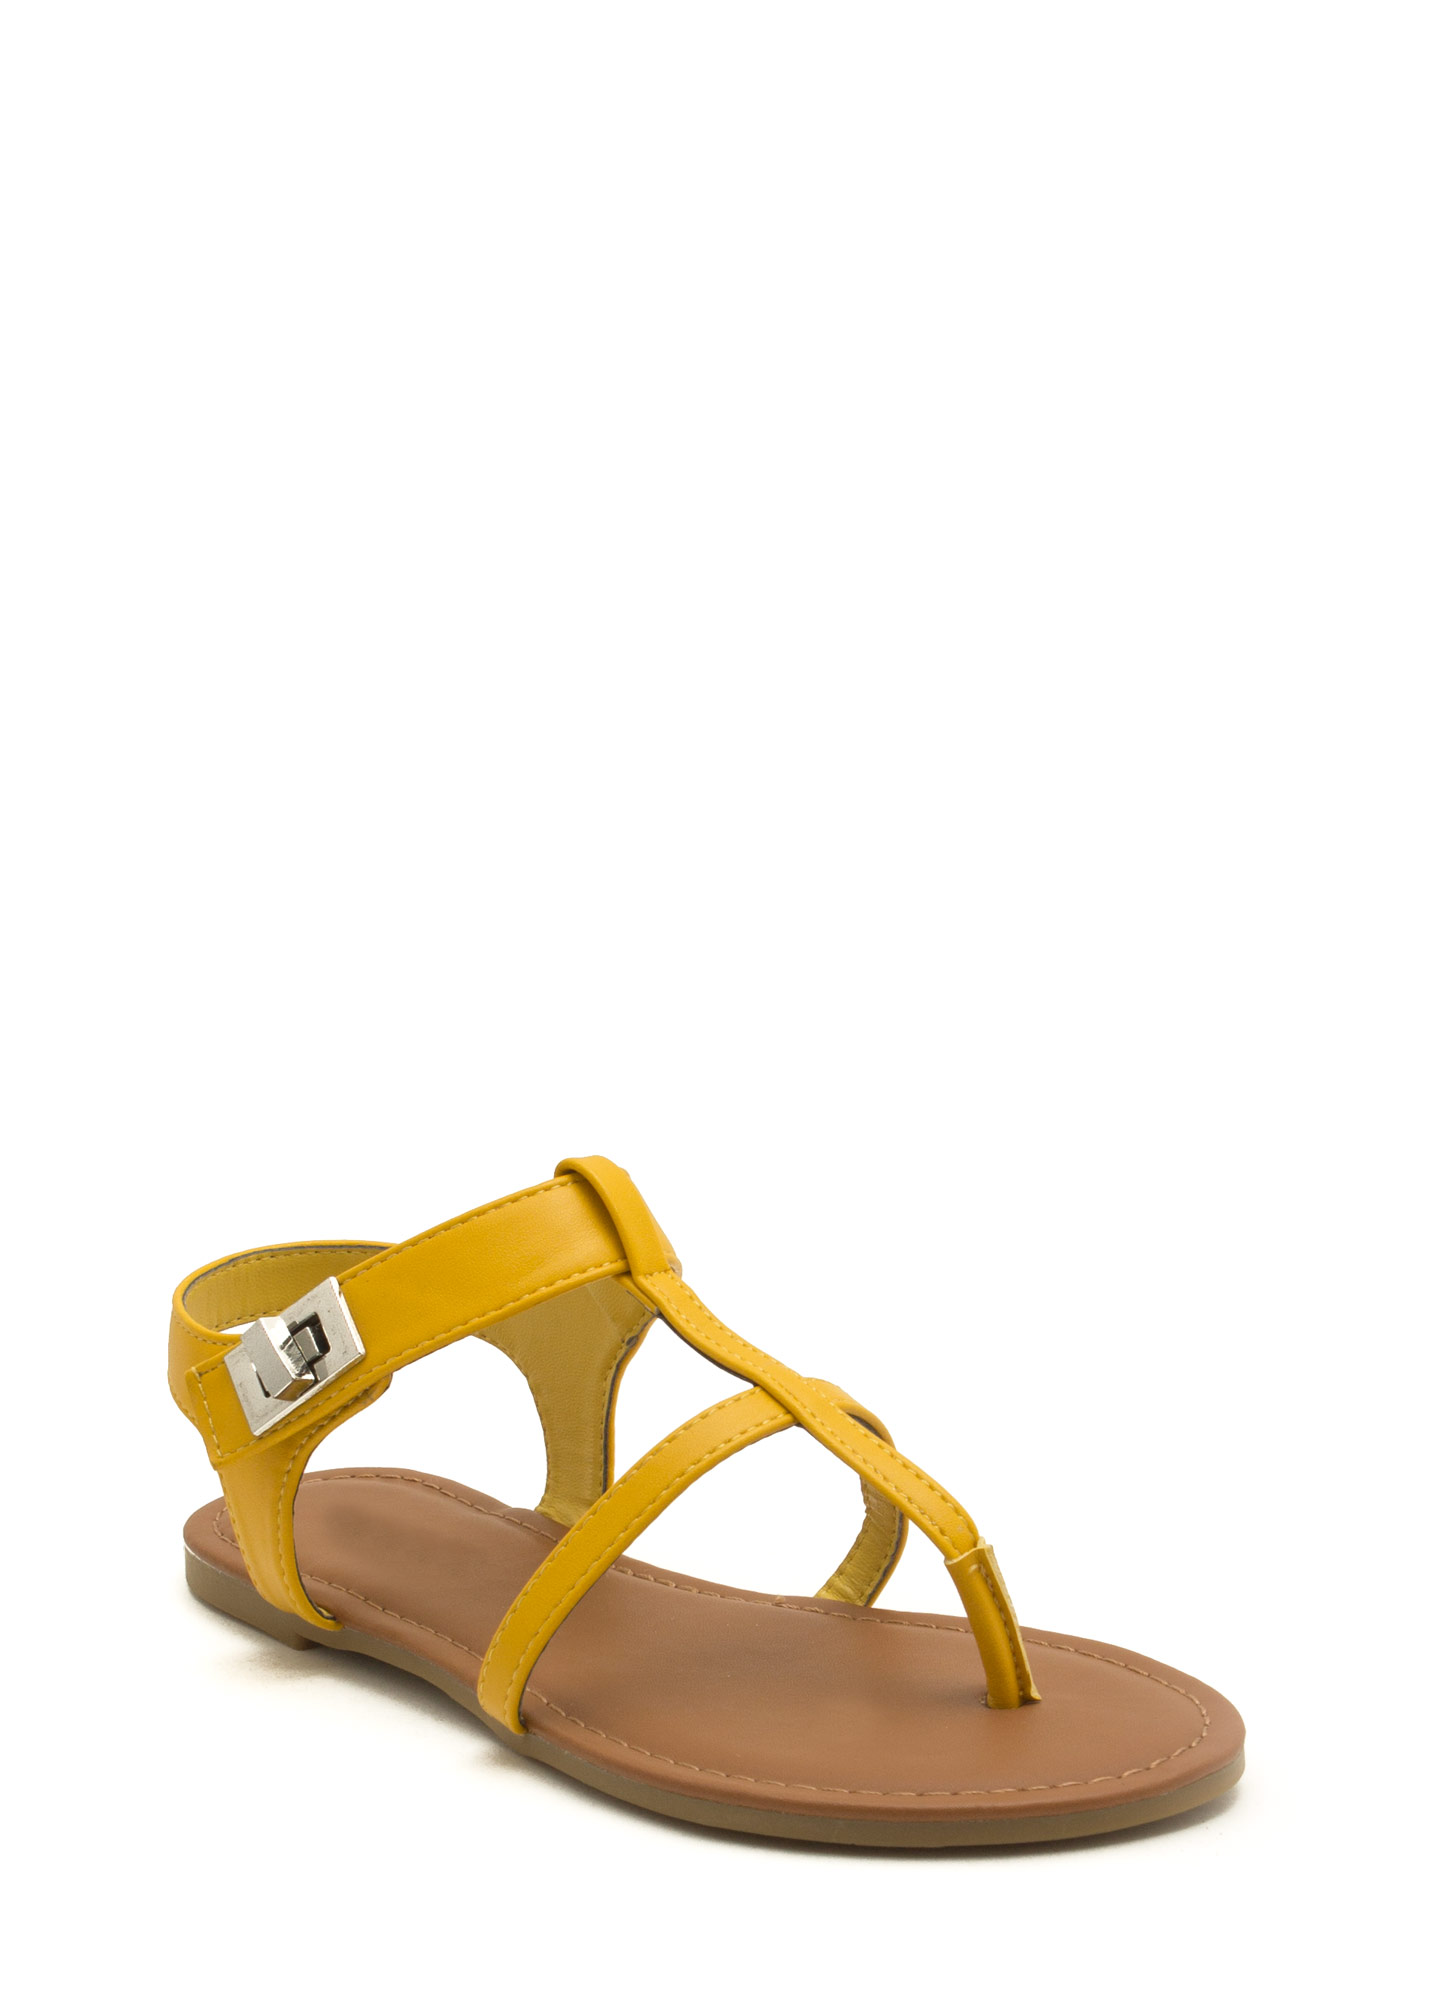 Locked Away Ankle Strap Sandals YELLOW